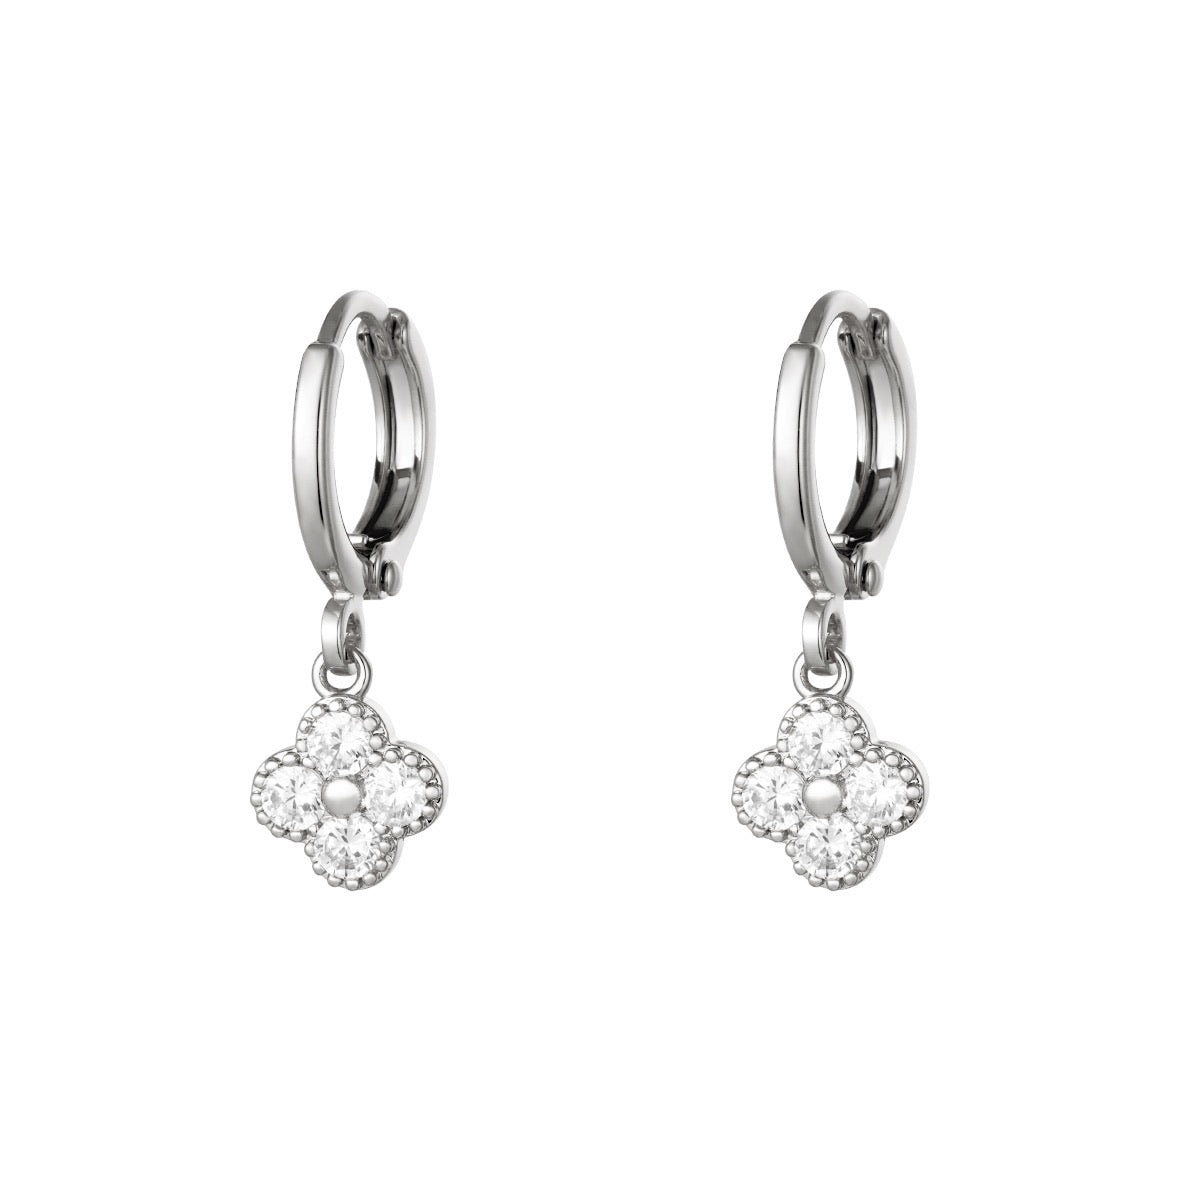 Mini Hoops Earrings - Clover Silver